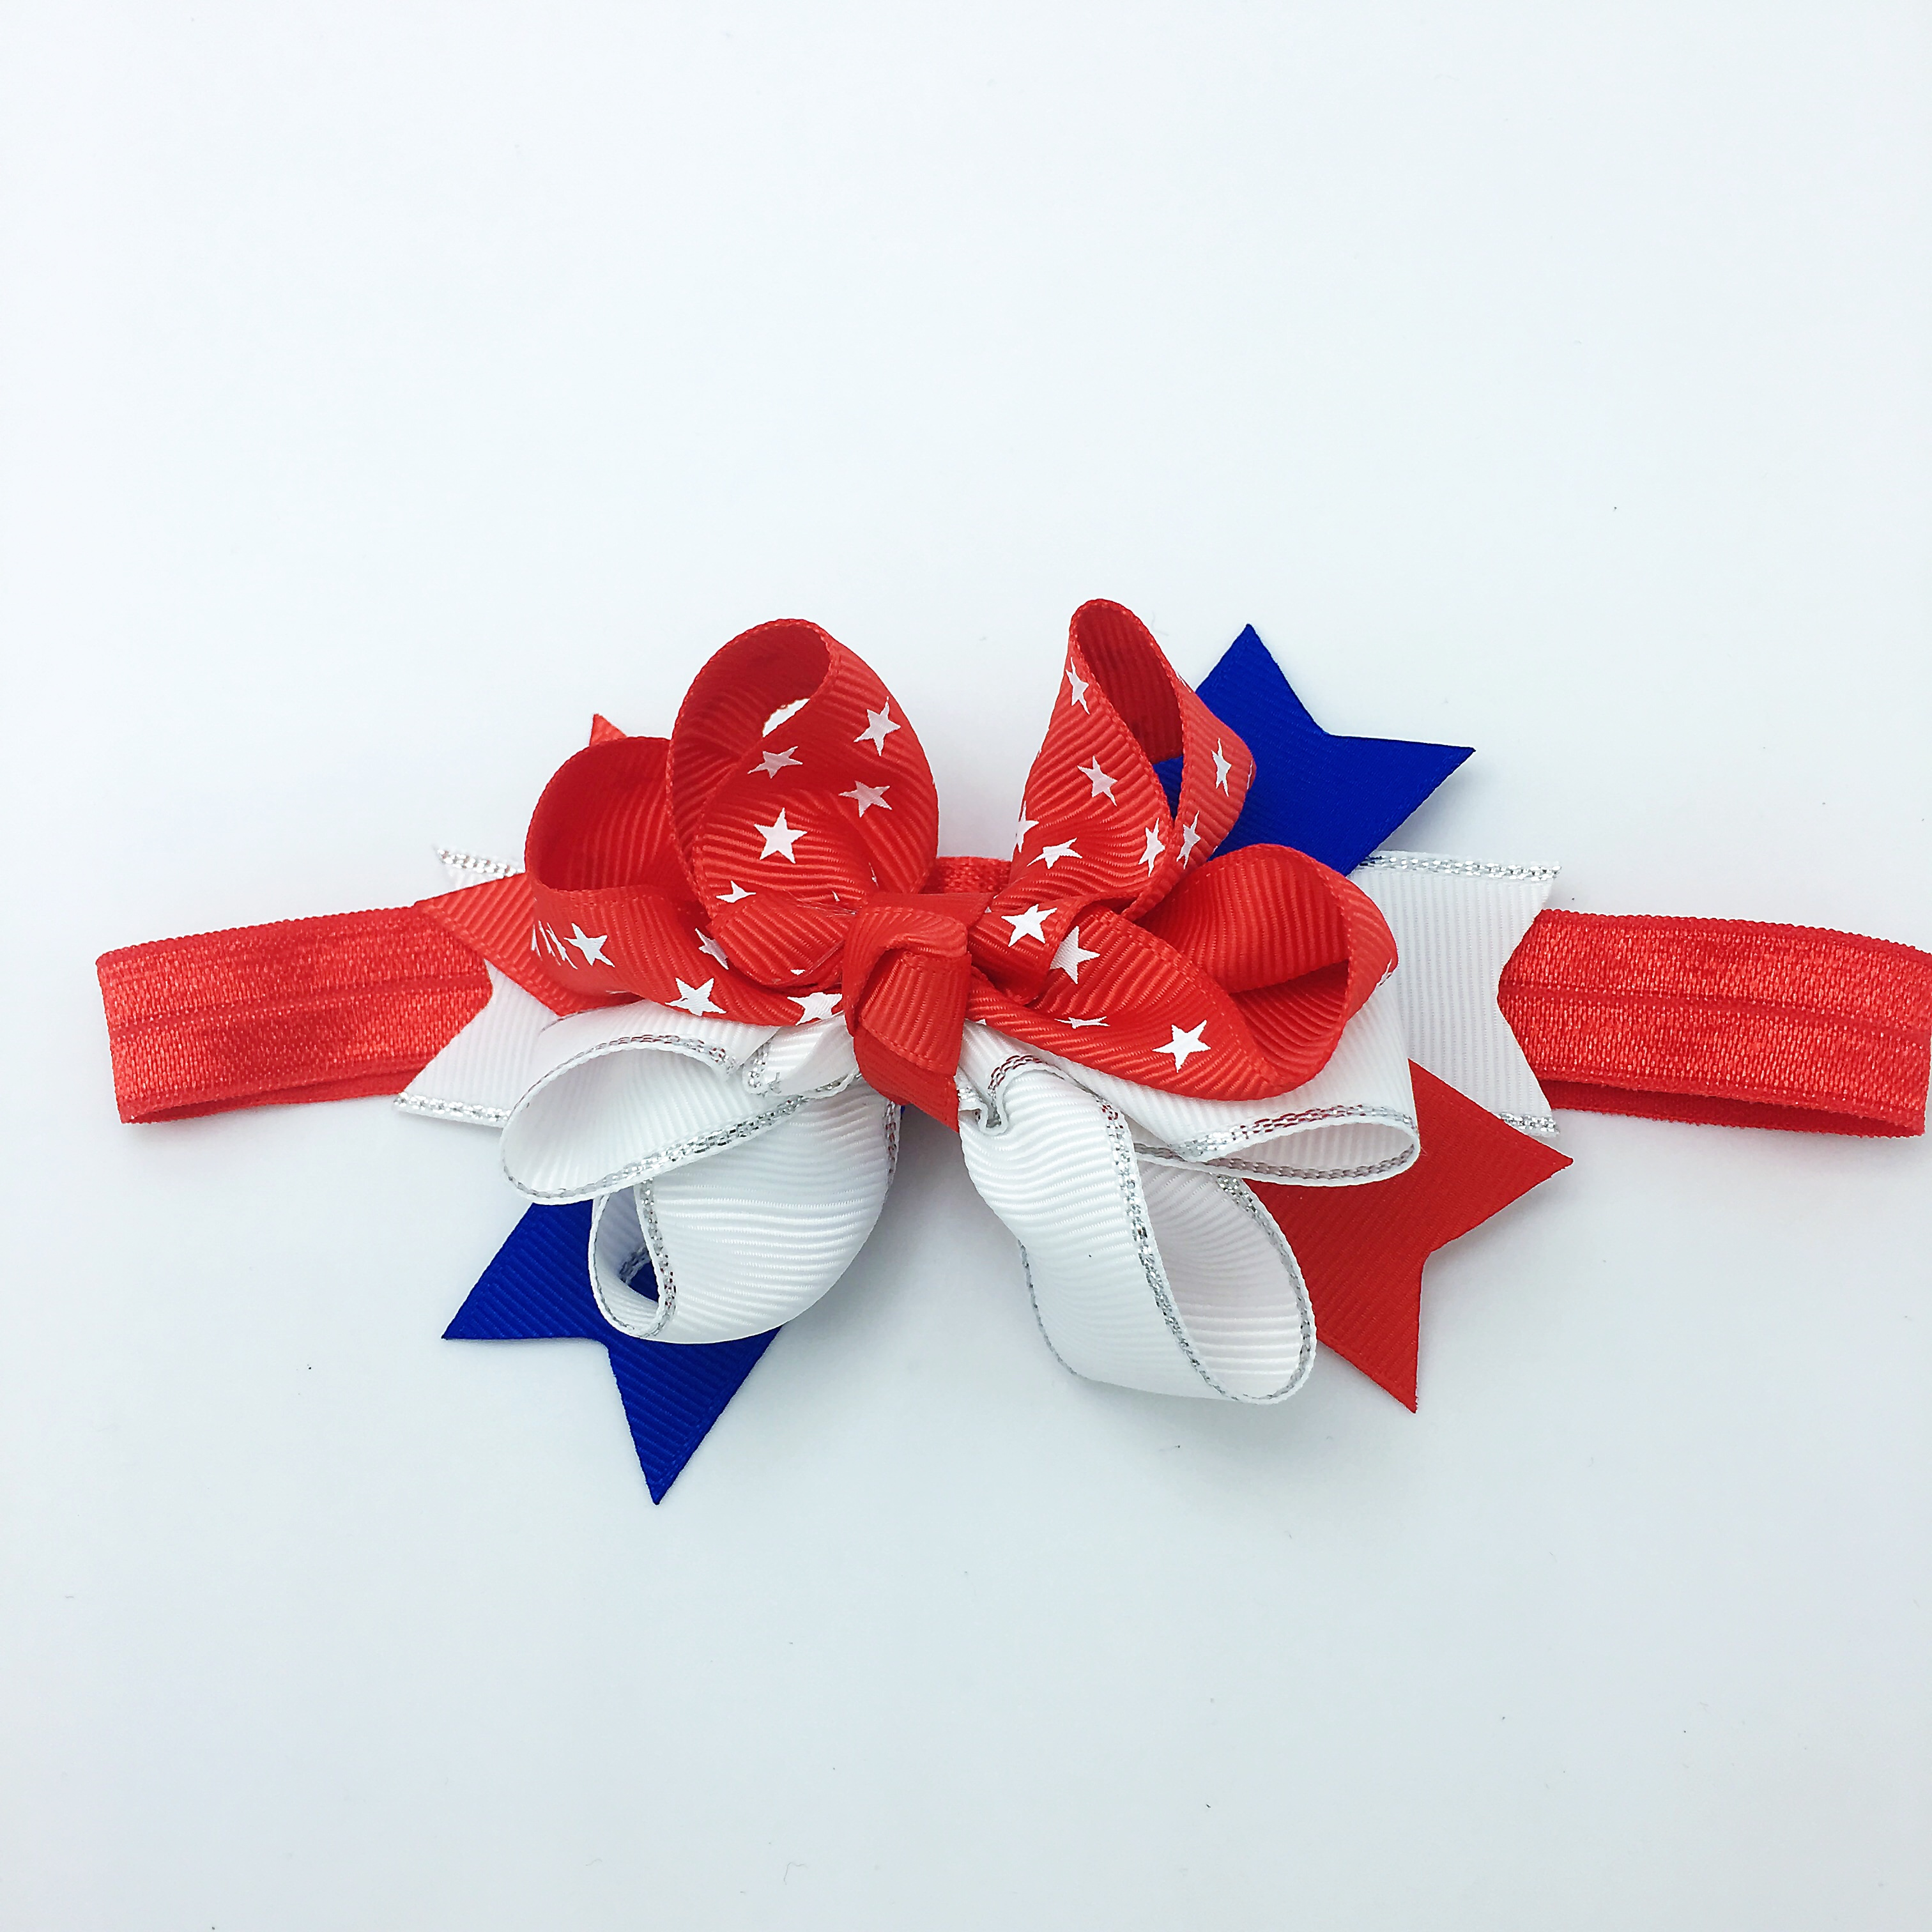 4 Girls 4th July Glitter Hair Bows With Alligator Clip Accessories Fourth